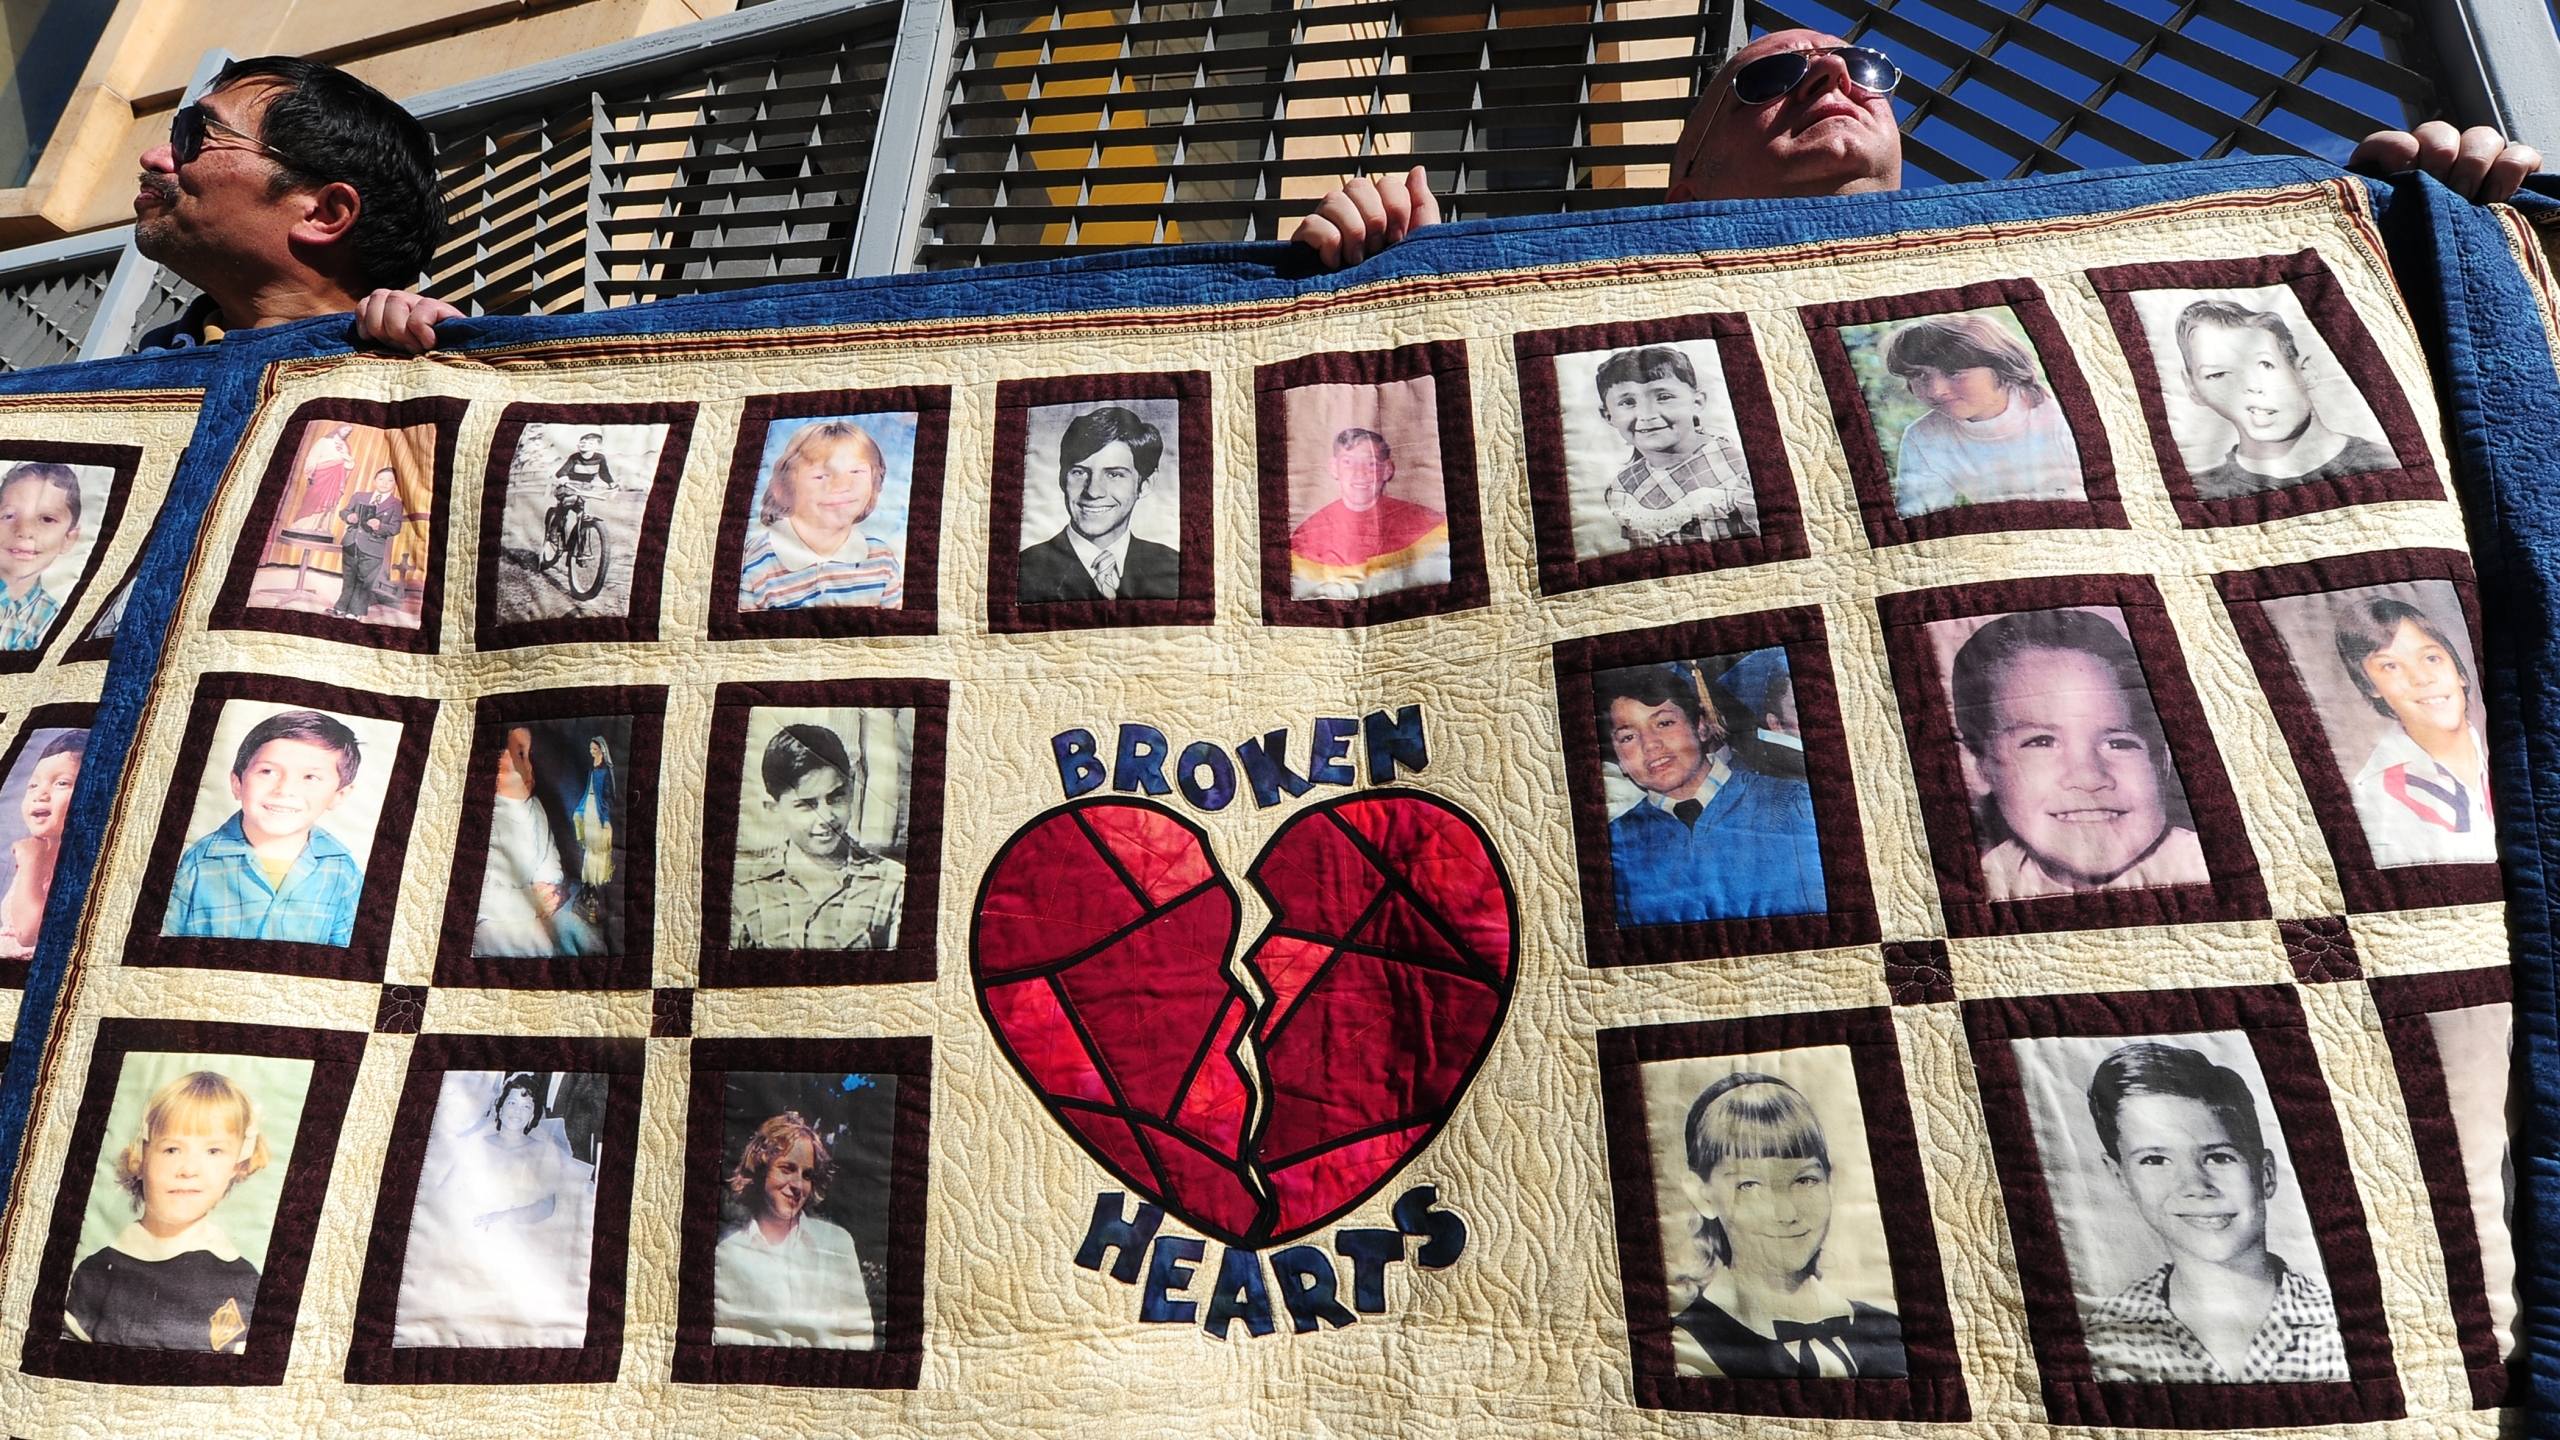 Abuse victim Jorgen Olsen, right, and supporter Glenn Gorospa, left, hold quilts bearing portraits of abused children while gathered outside the Cathedral of Our Lady of the Angels on Feb. 1, 2013. (Credit: Frederic J. Brown / AFP / Getty Images)